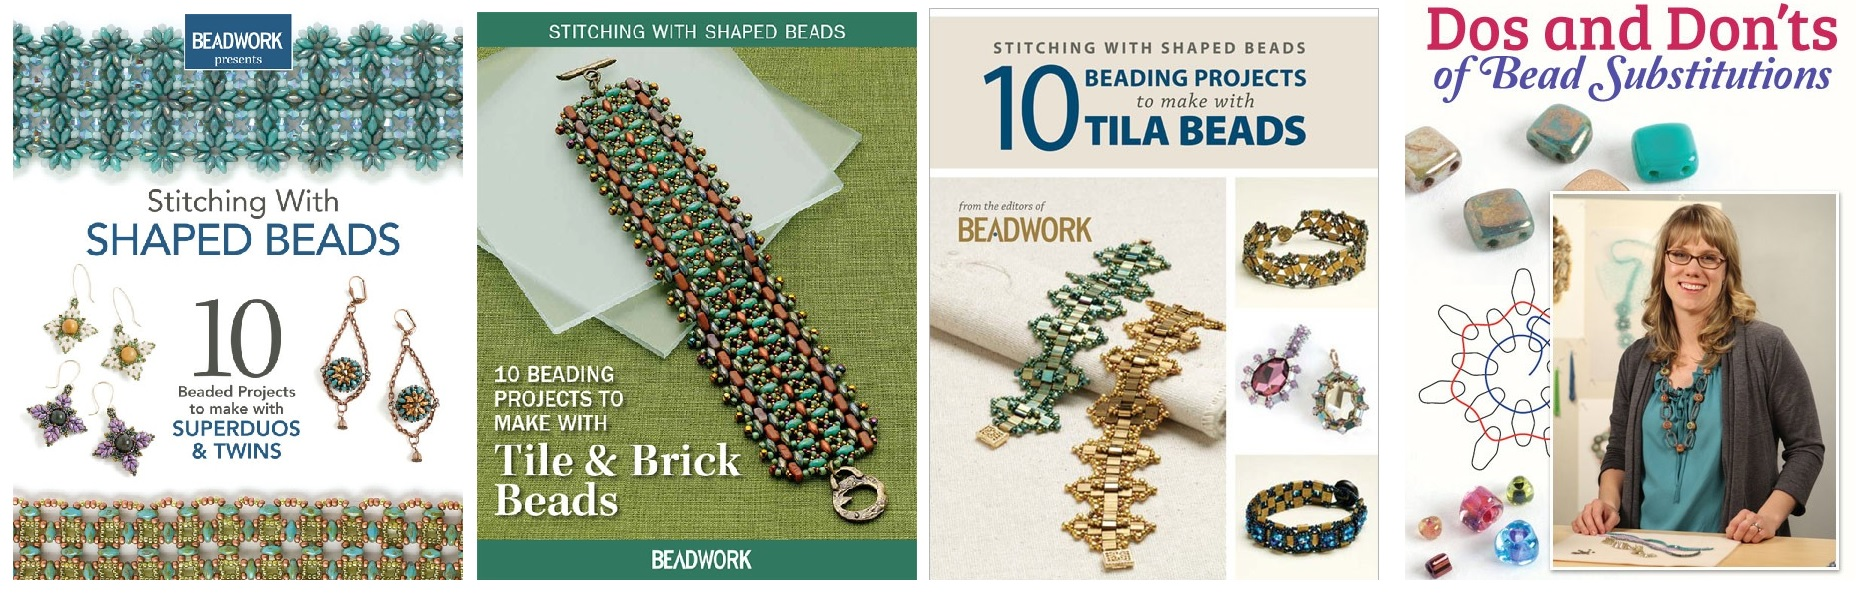 shaped bead products from Interweave